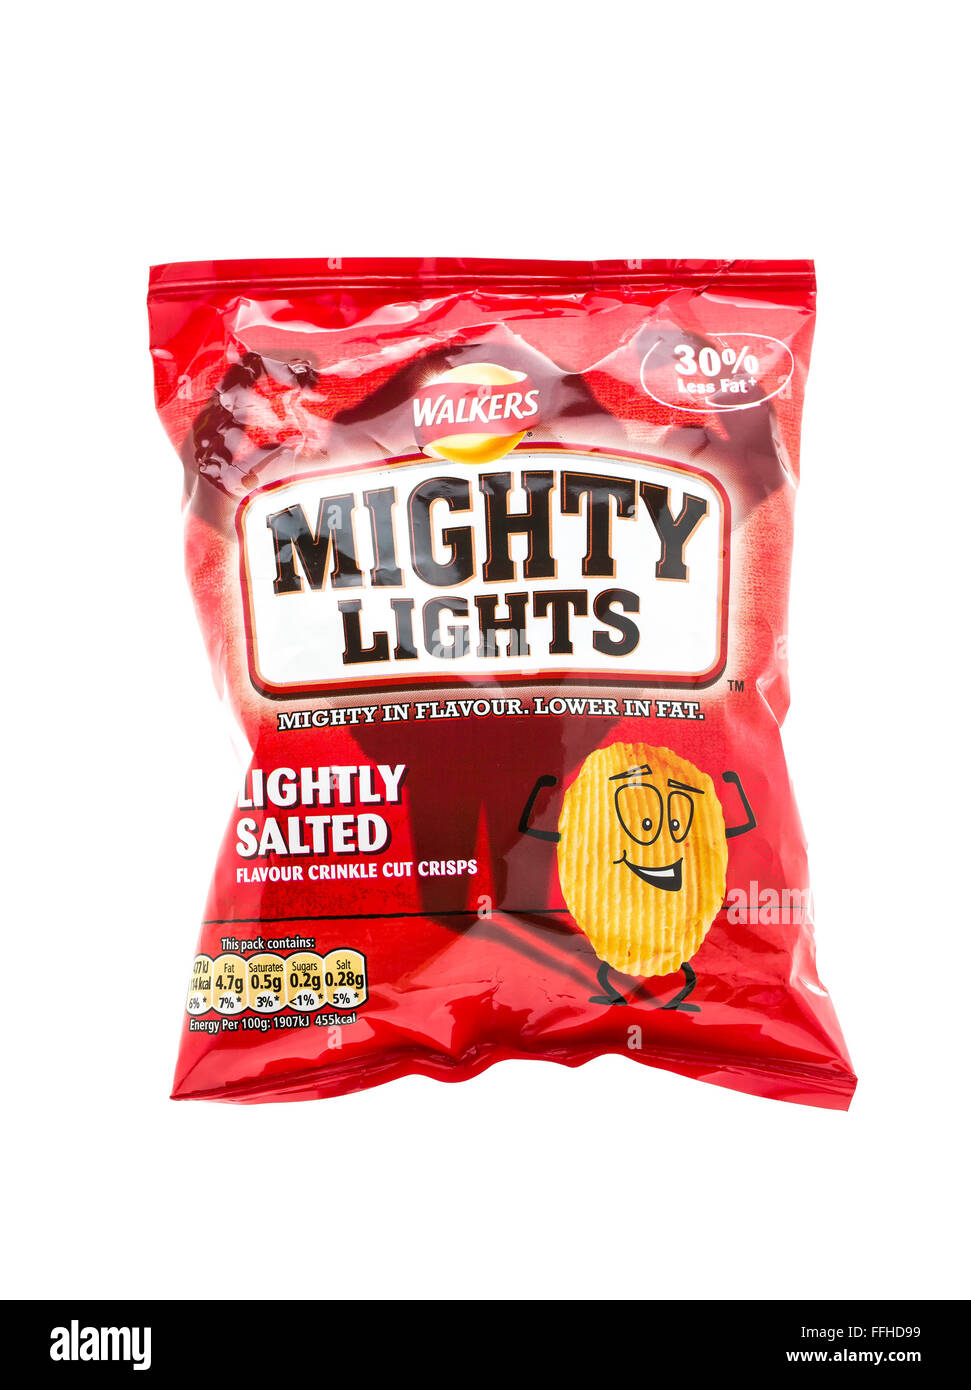 Bag Of Walkers Mighty Lights Low Fat Crisps on a White Background - Stock Image